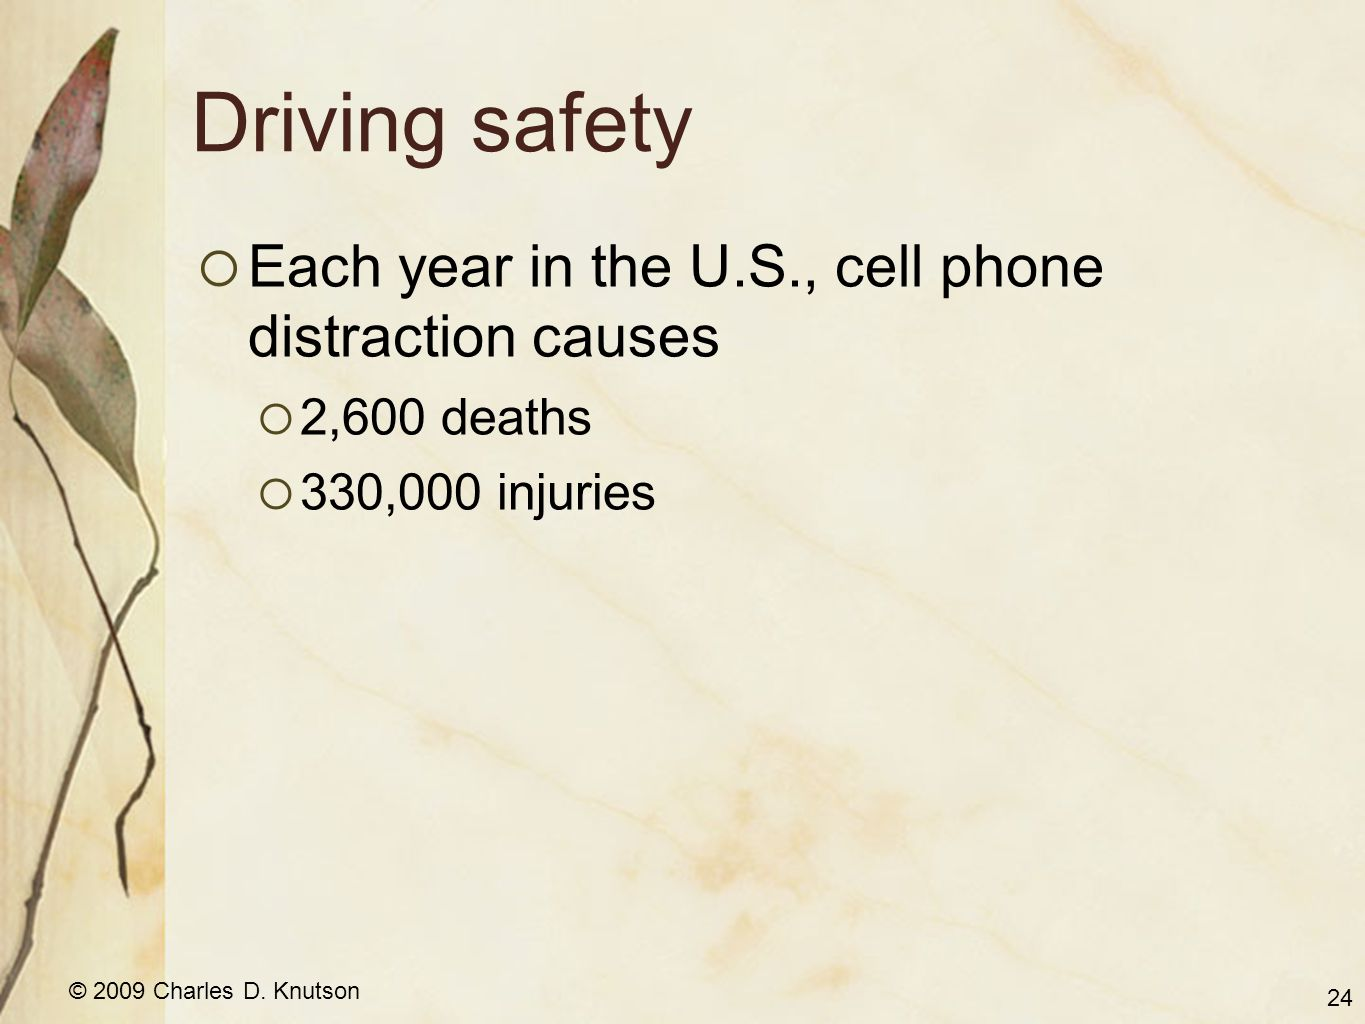 © 2009 Charles D. Knutson Driving safety  Each year in the U.S., cell phone distraction causes  2,600 deaths  330,000 injuries 24